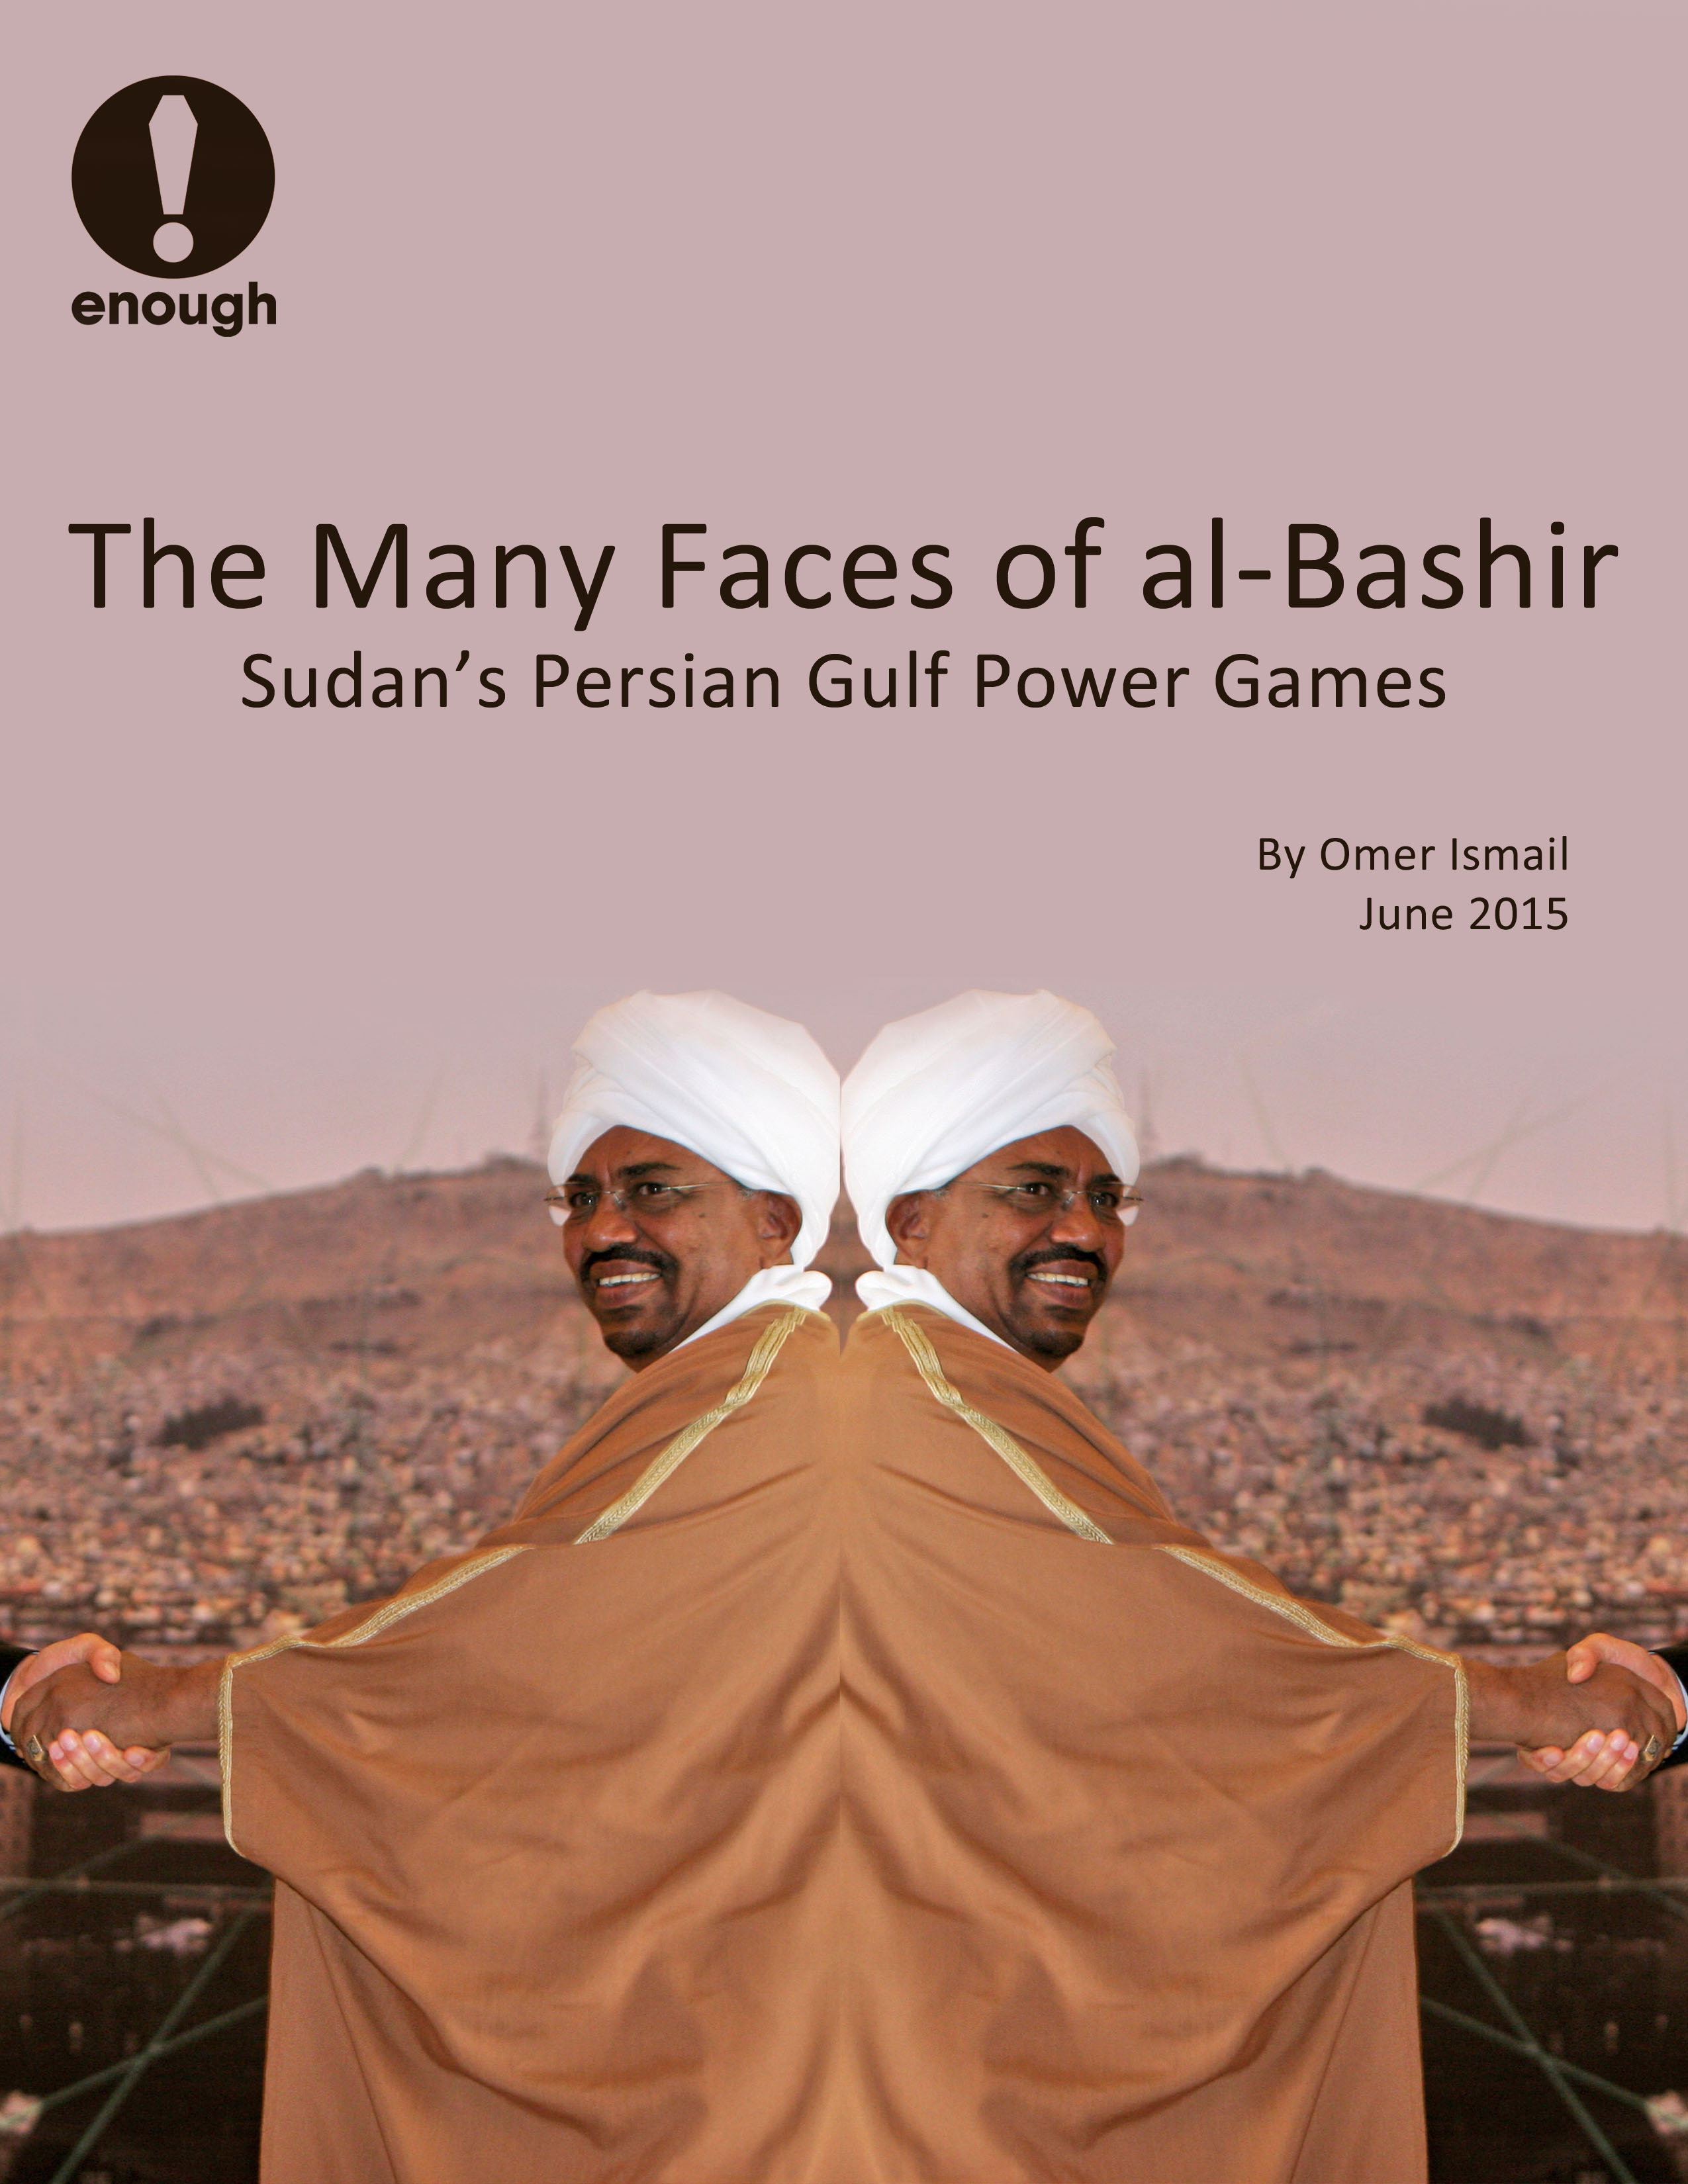 The Many Faces of al-Bashir: Sudan's Persian Gulf Power Games